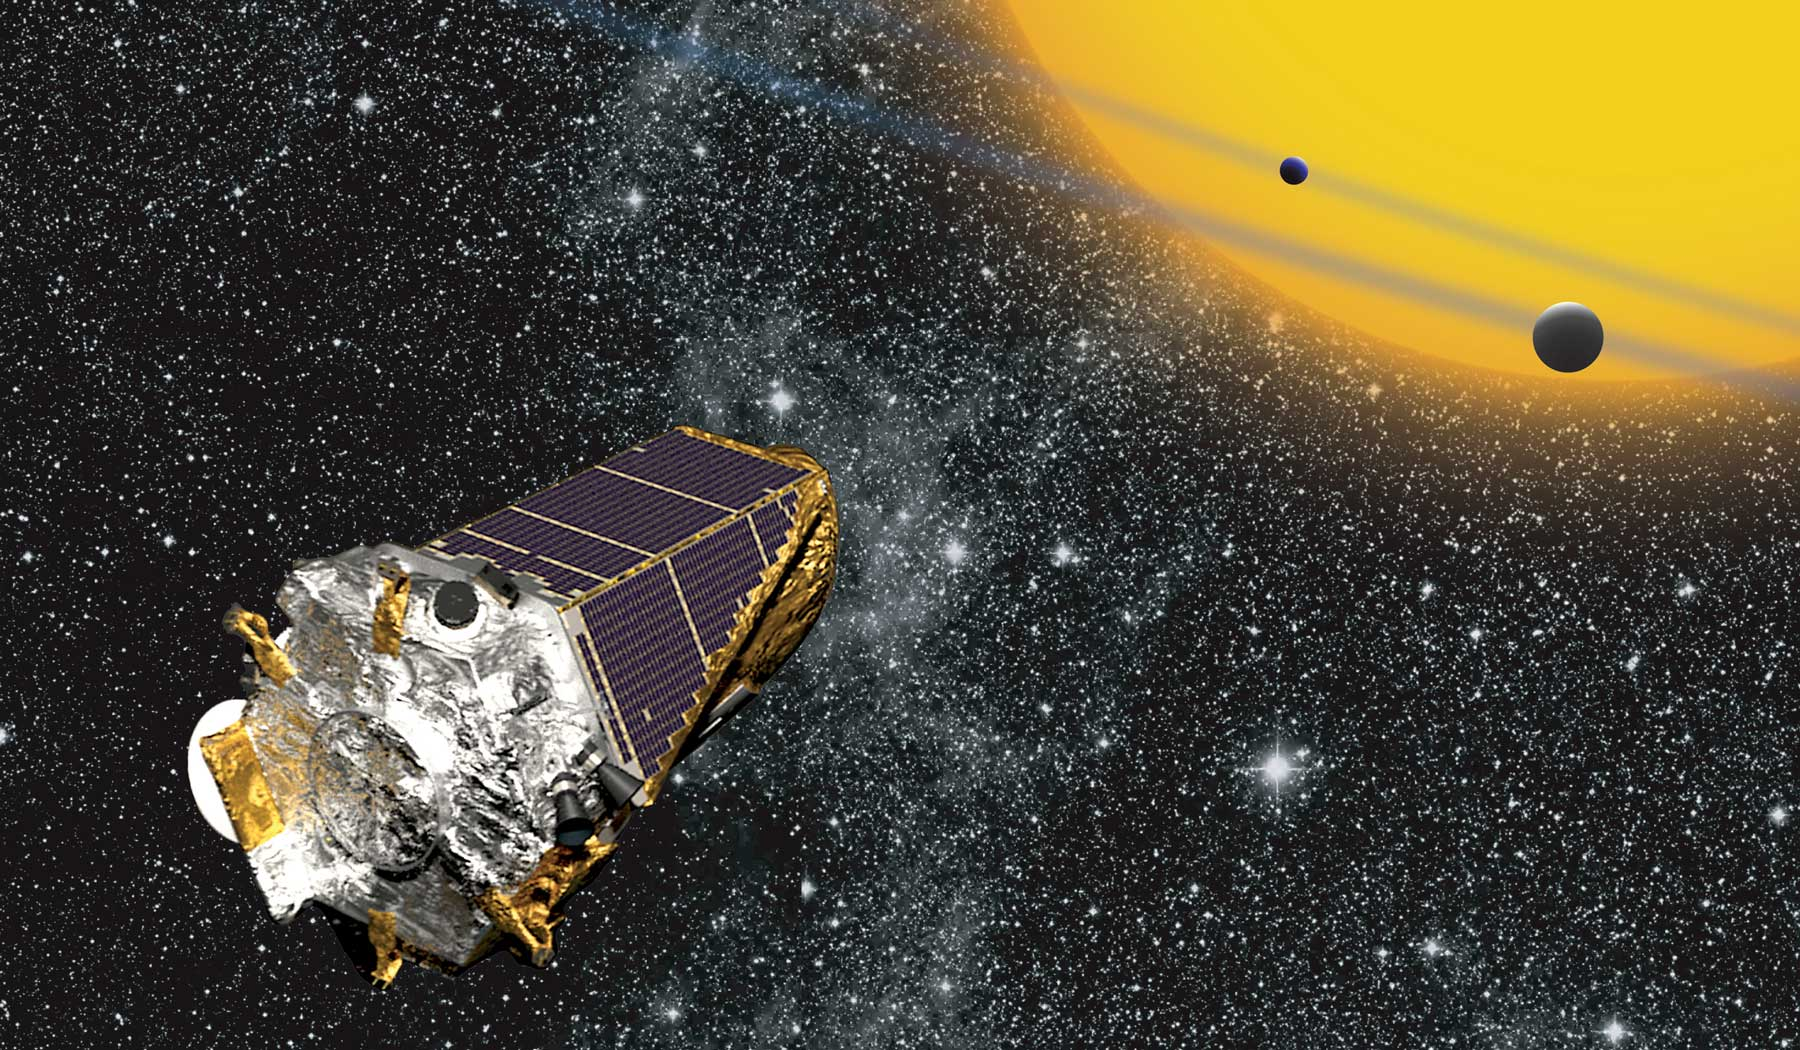 Kepler space telescope.